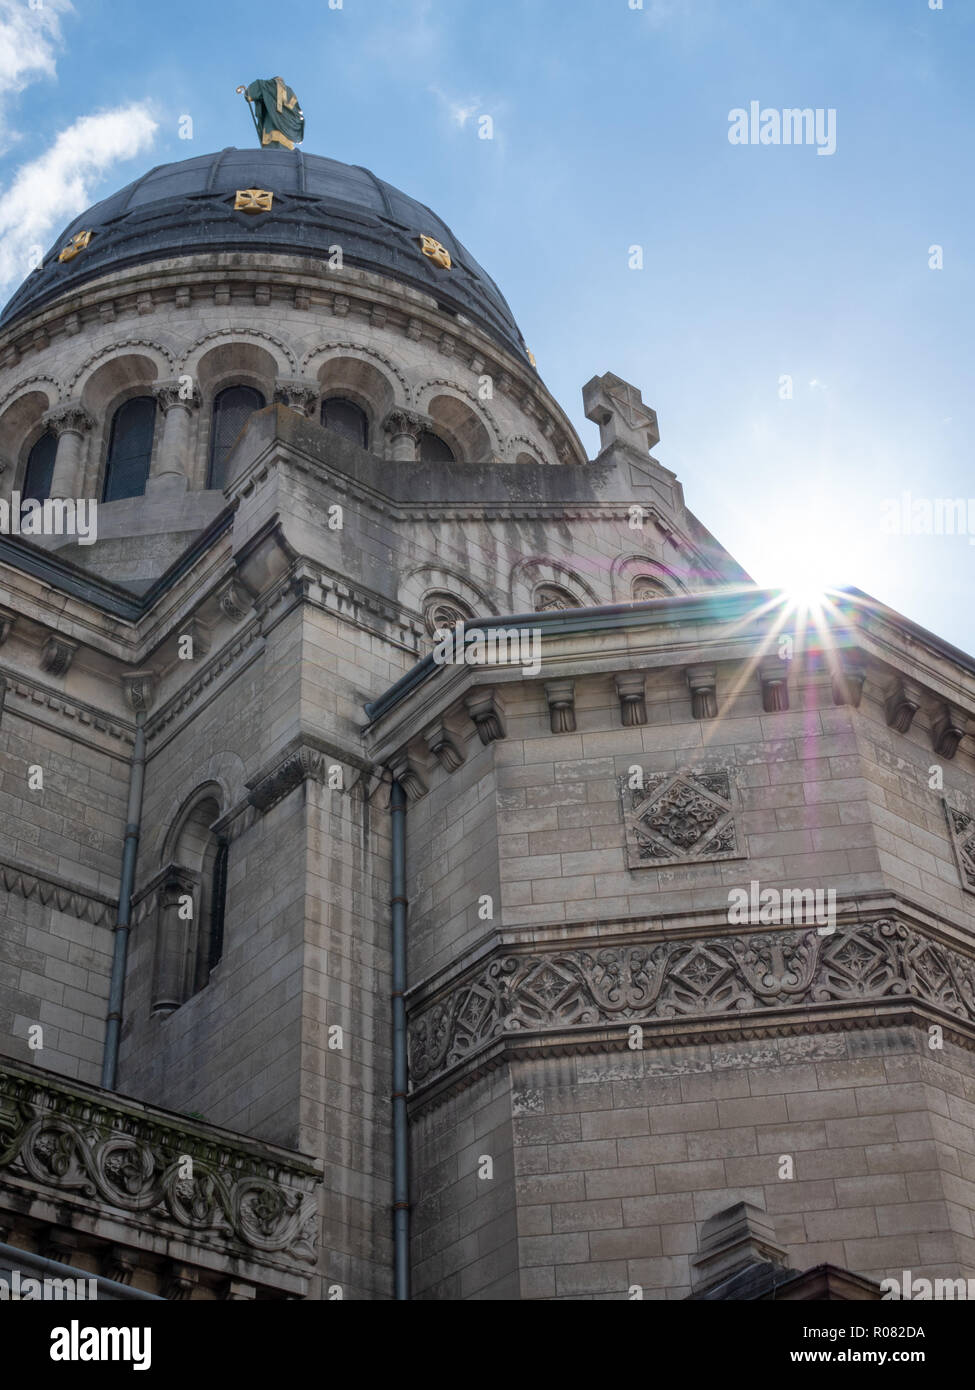 Basilica of St Martin. It's a Roman Catholic basilica dedicated to Saint Martin of Tours, in France, on whose tomb it was built. - Stock Image